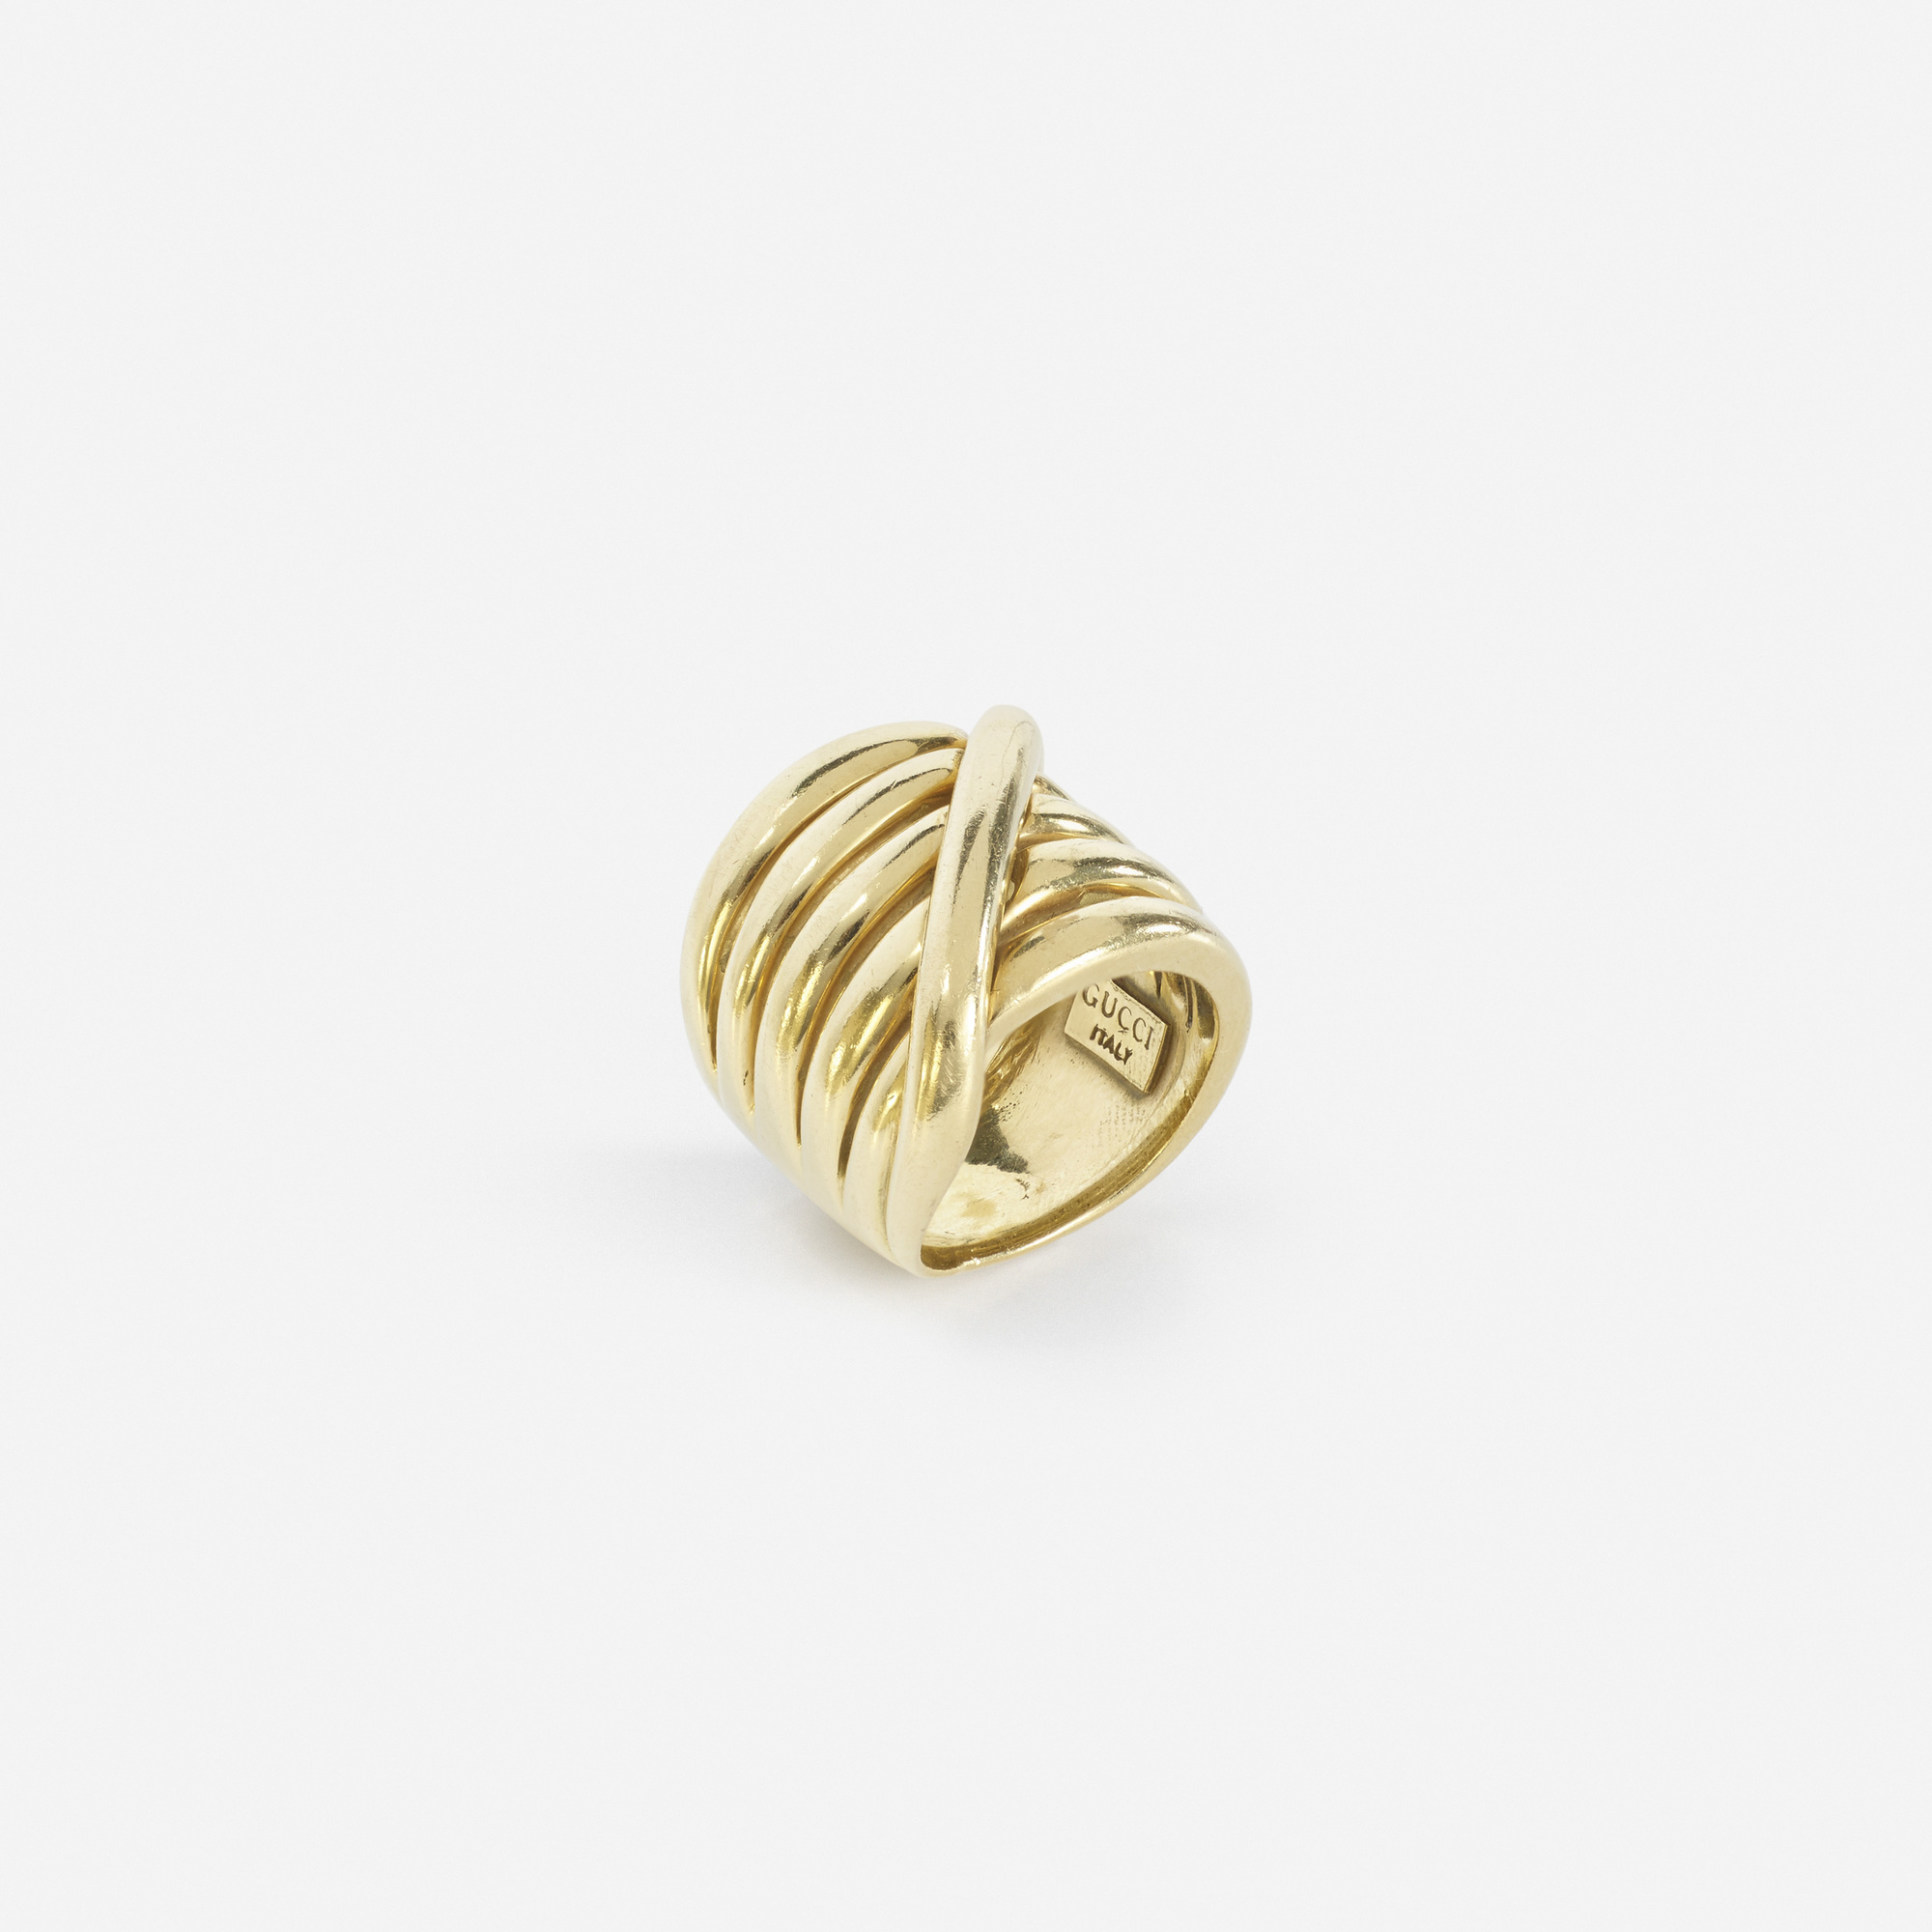 264: Gucci / A gold ring (1 of 2)